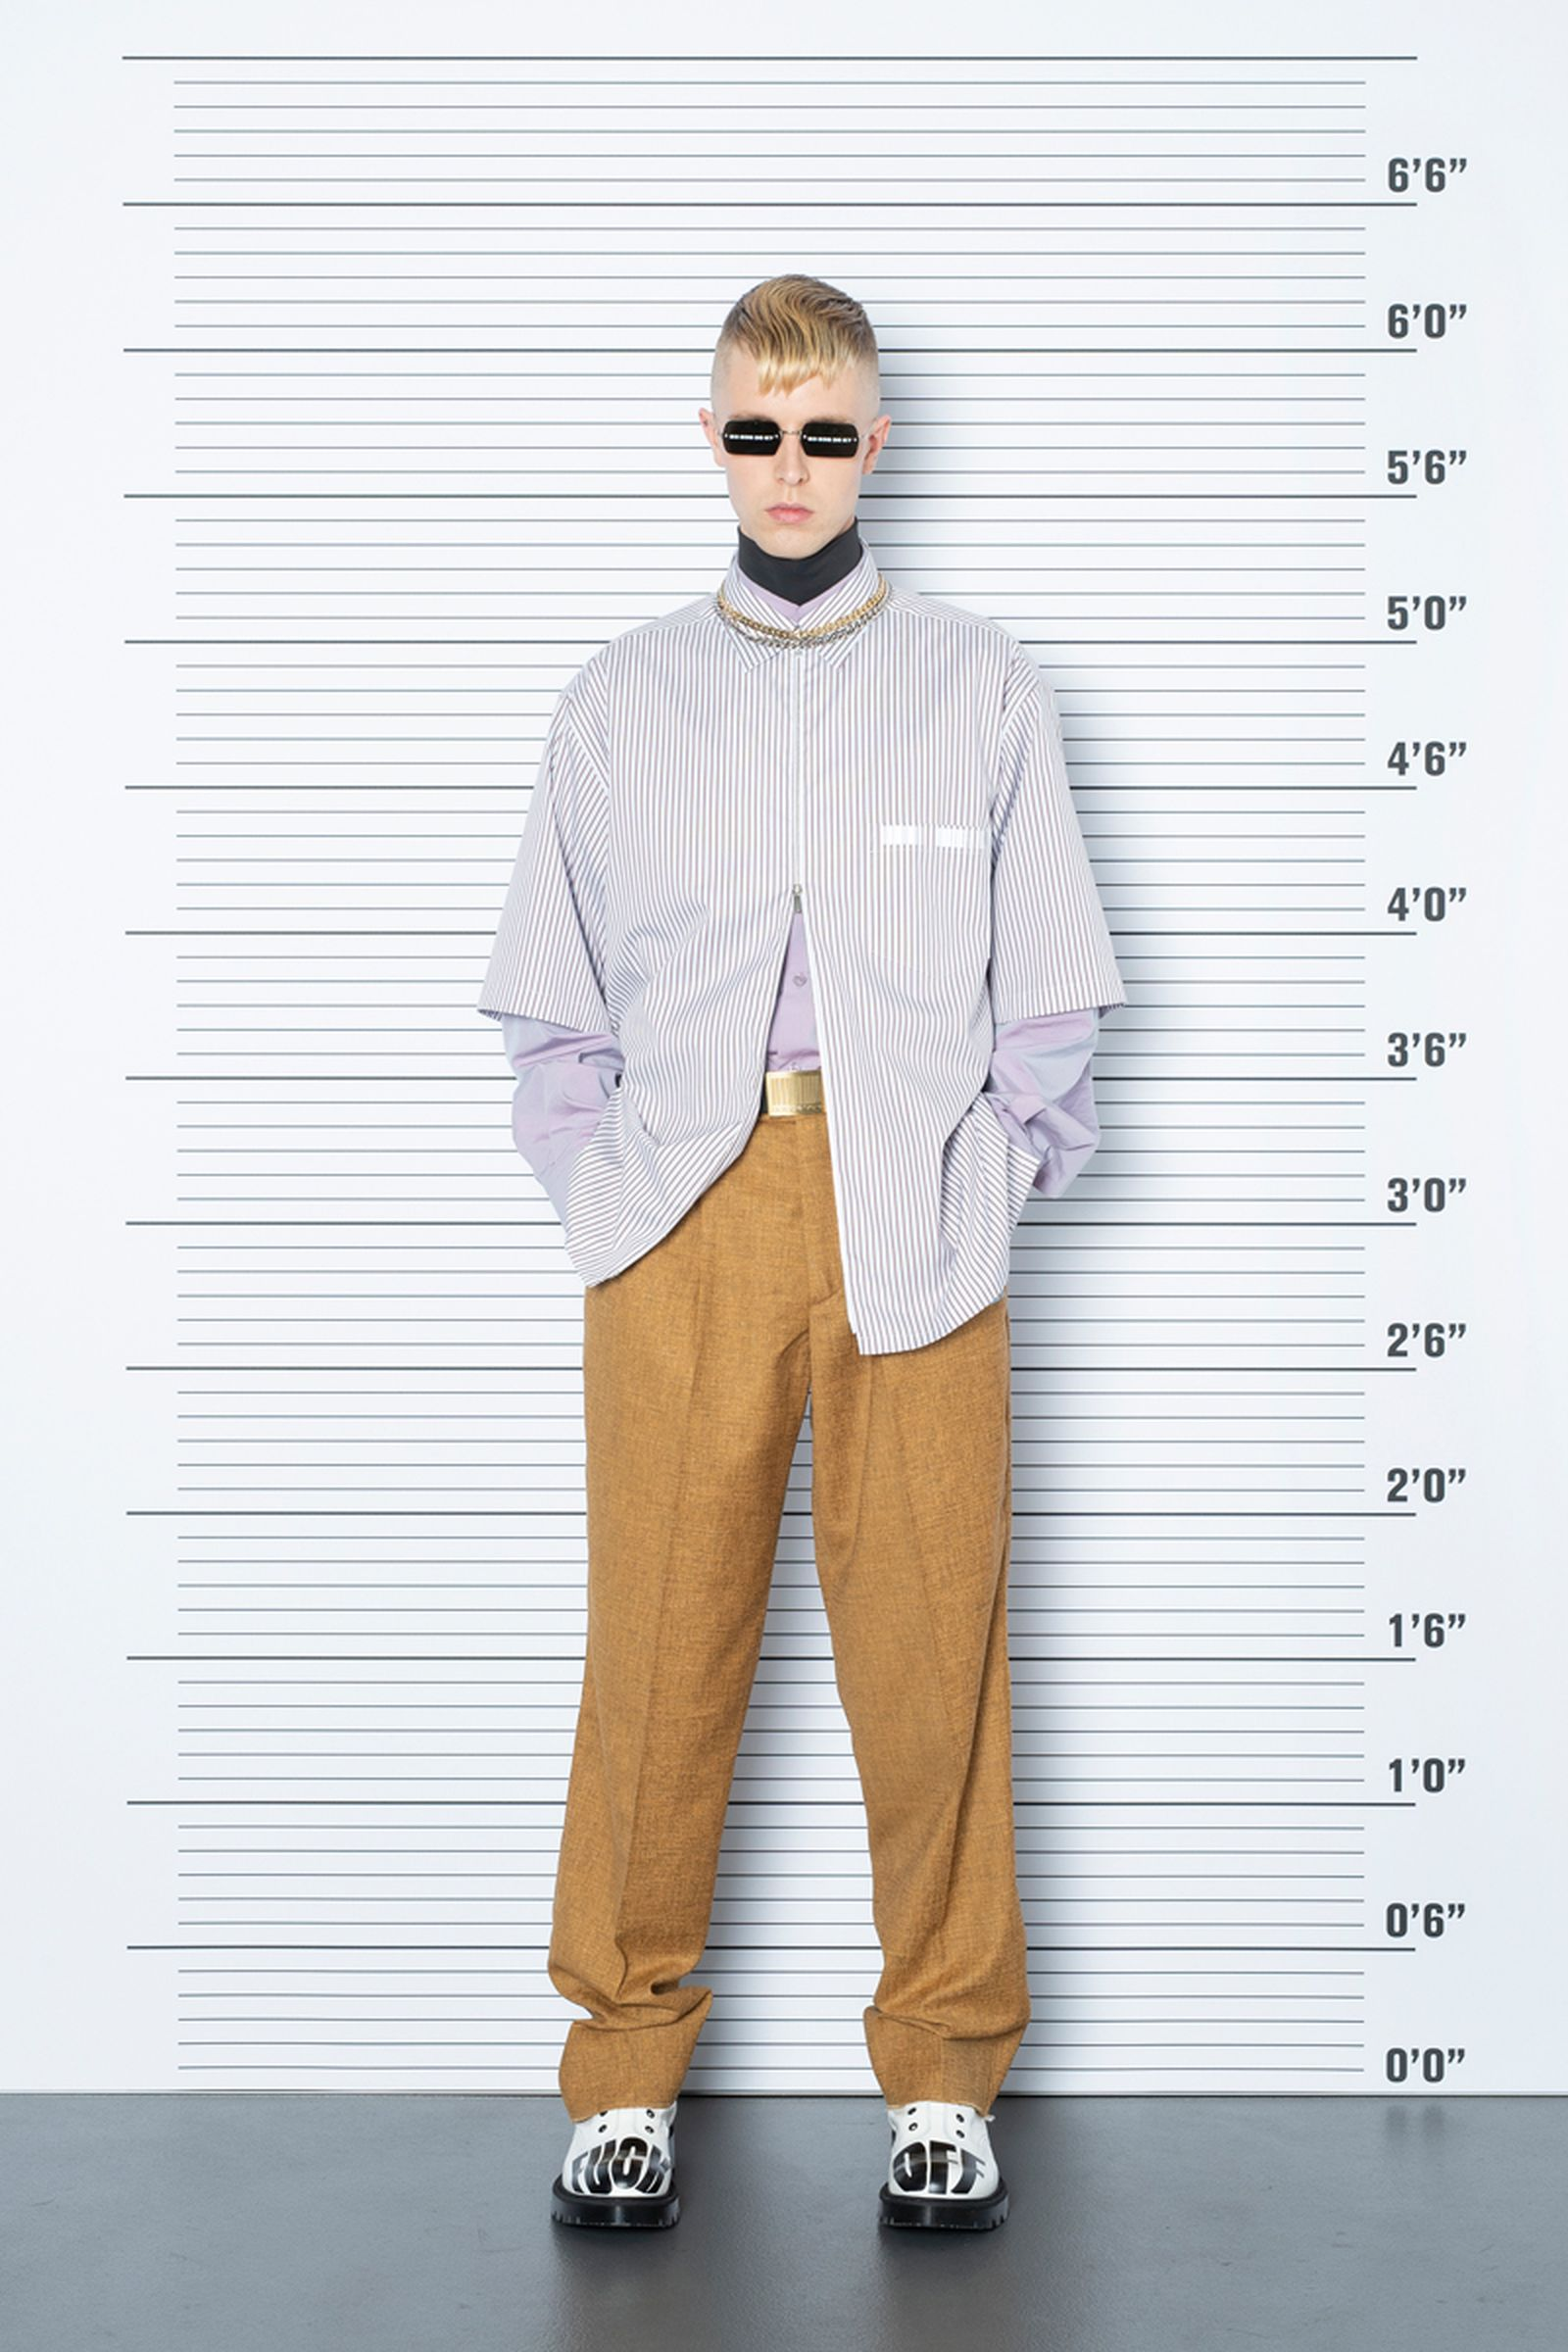 vetements-vtmnts-ss22-collection-lookbook- (66)